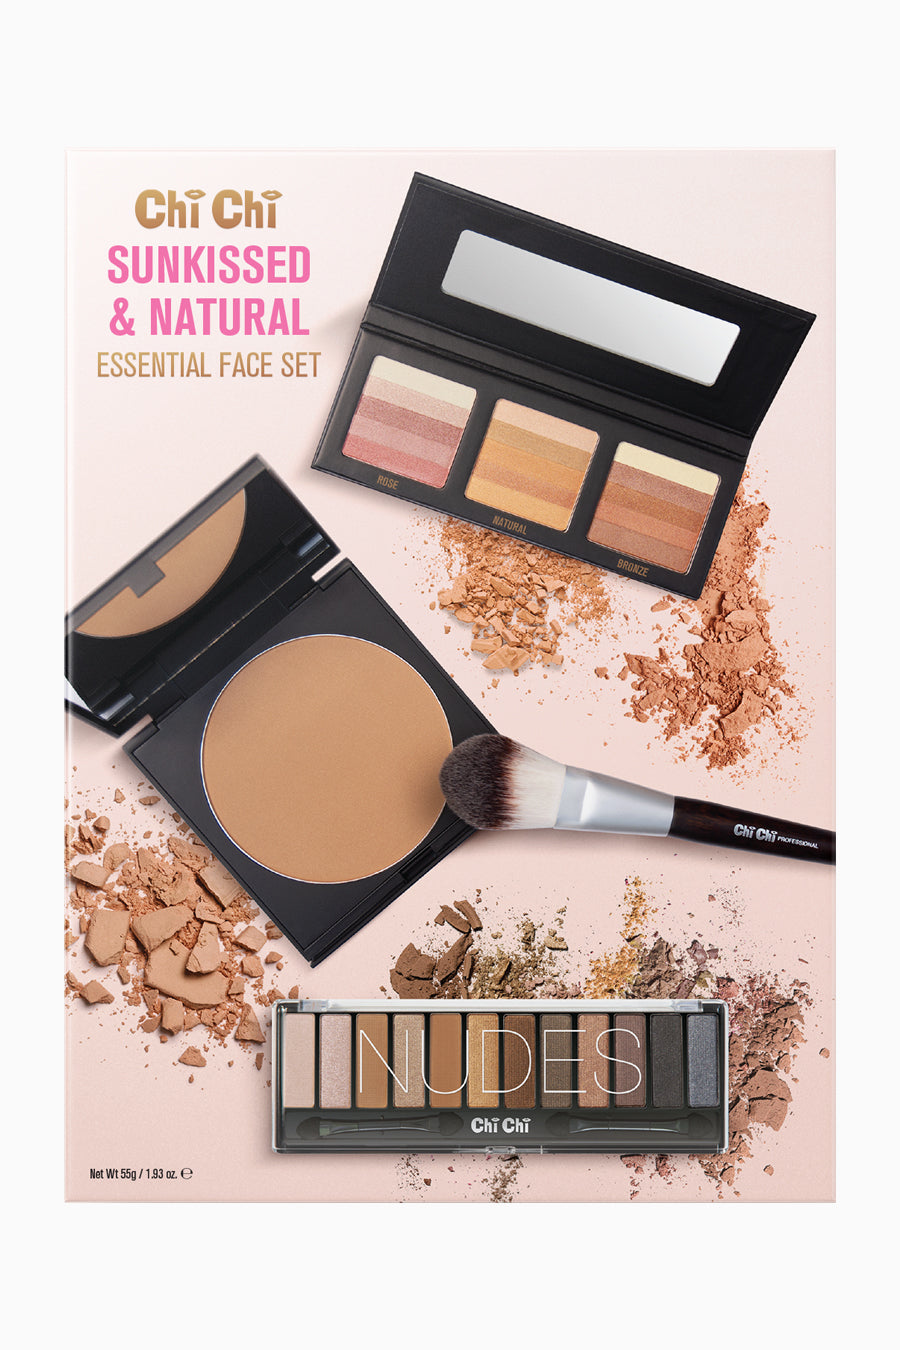 Sunkissed and Natural - Essential Face Set